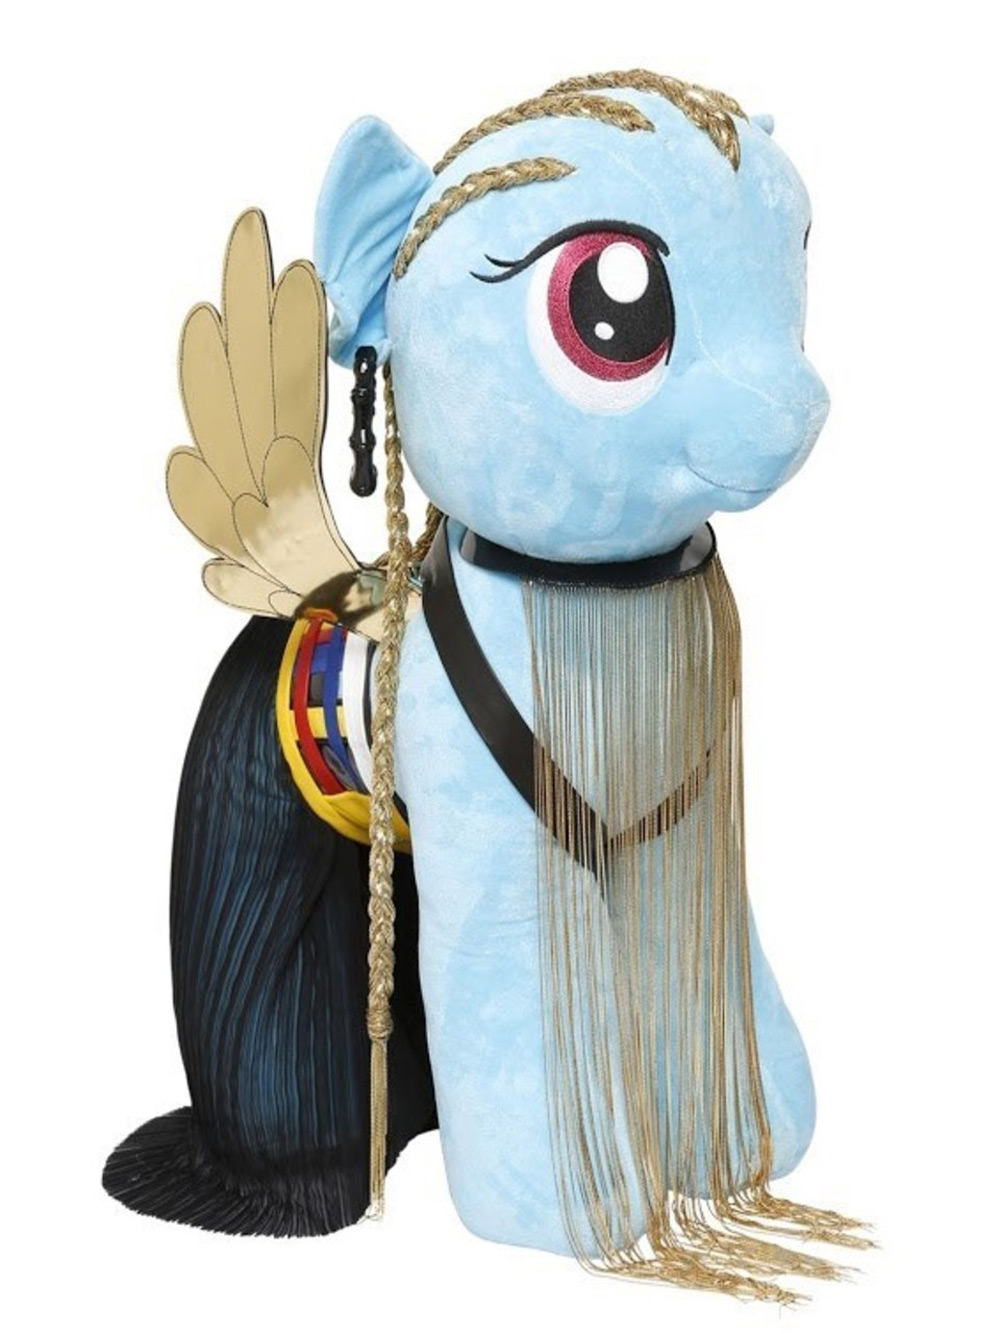 My Little Pony Gets A High-Fashion Makeover For Charity